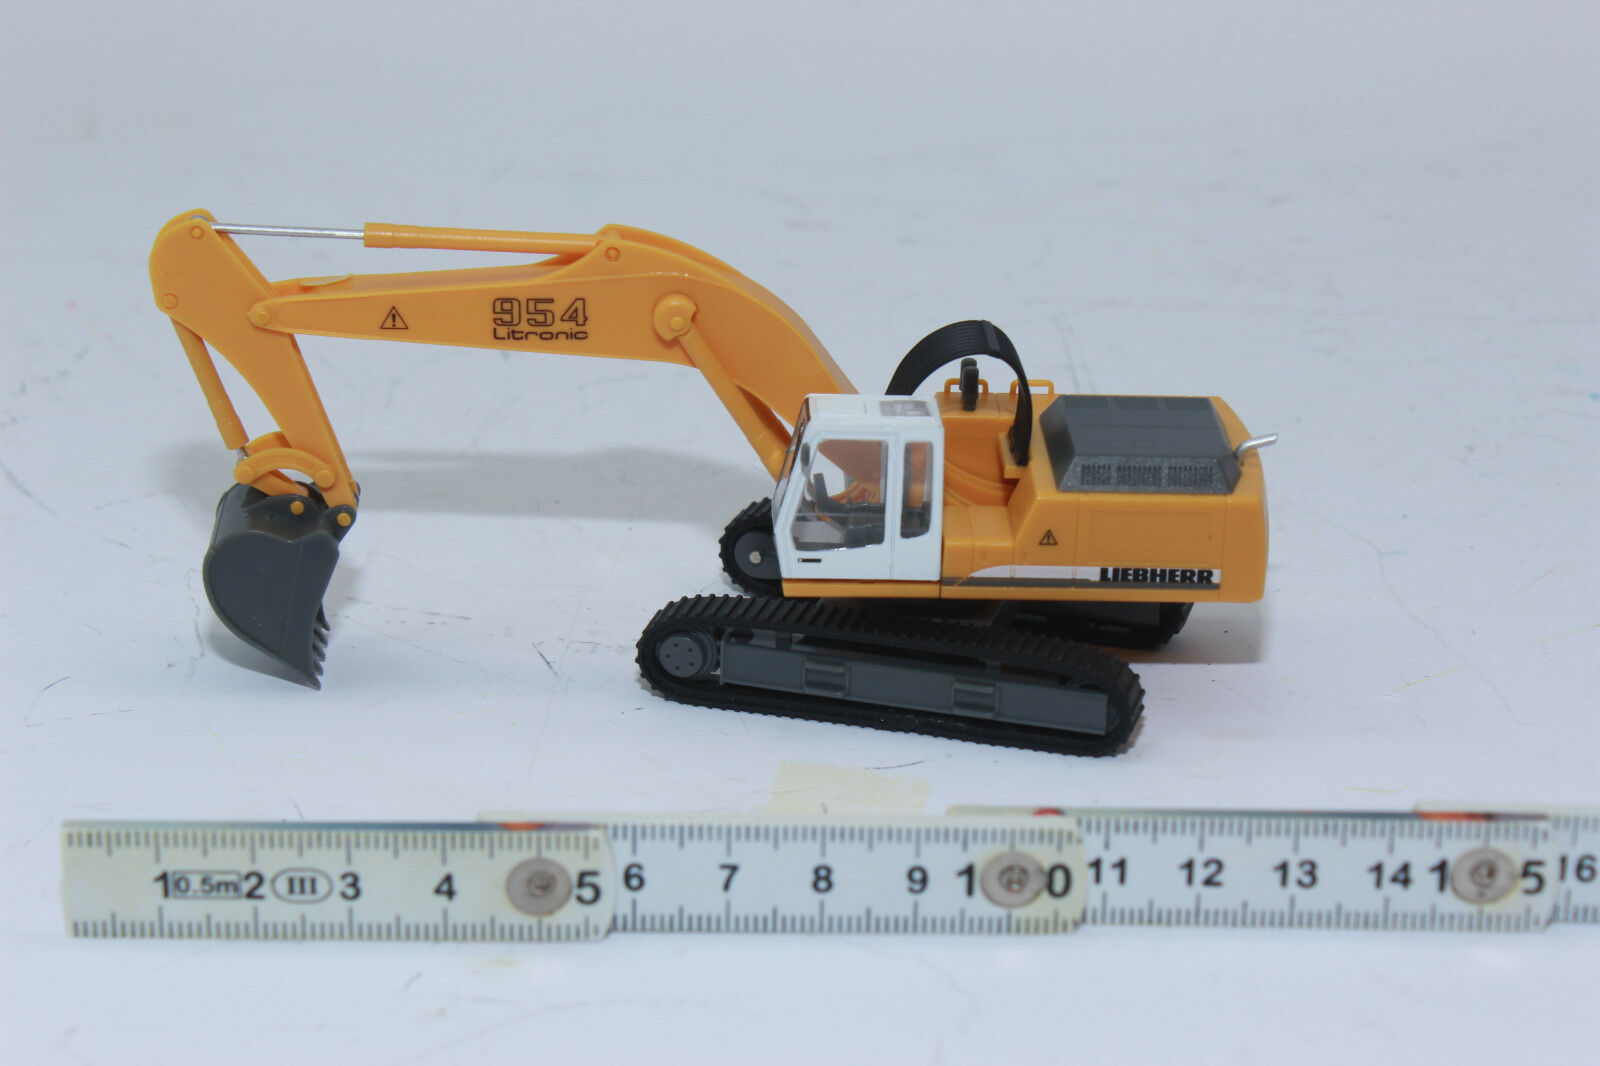 Collection Plastic-Scale 1:87 Excavator Litronic Longfront with Demolition Clamps Truck Miniature Models herpa 152006-001 Raupenbagger mit Abbruchzange Liebherr Crawler 954 Multicoloured